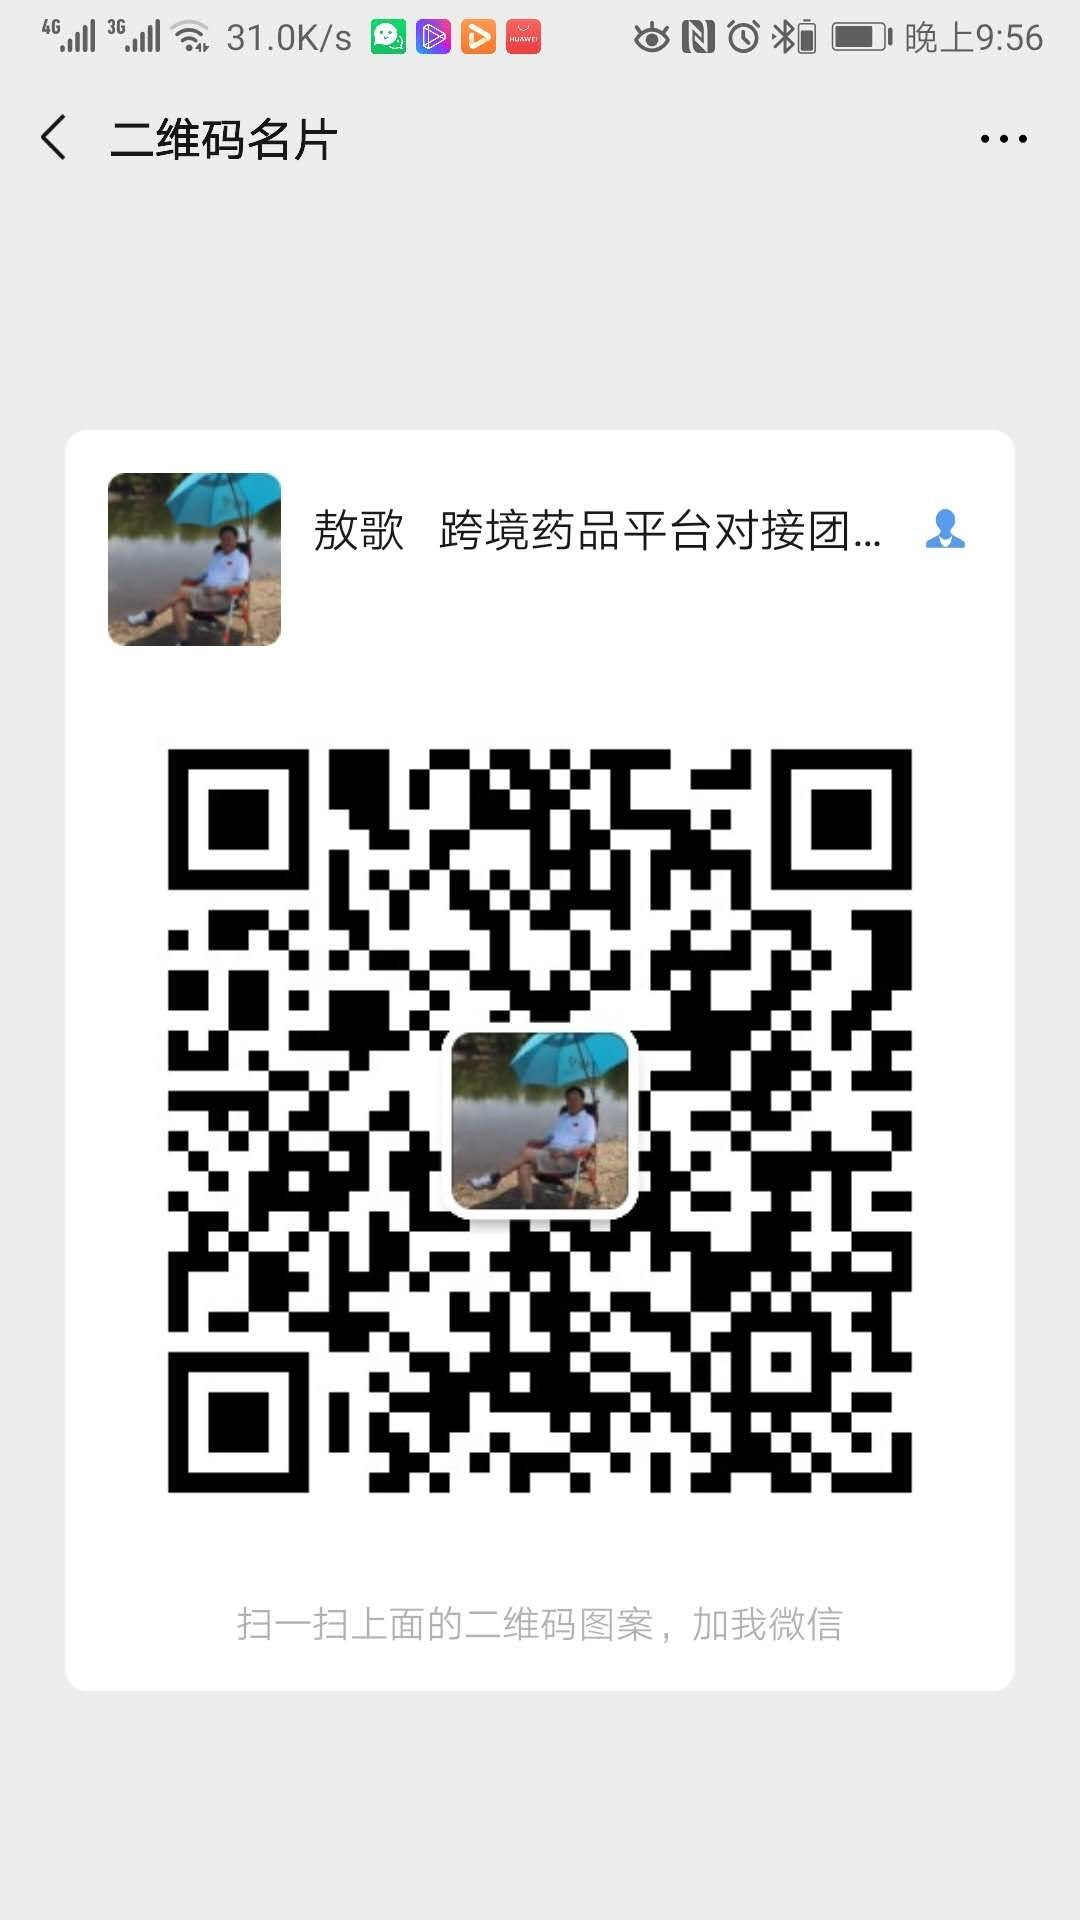 .\..\..\..\..\..\..\AppData\Local\Temp\WeChat Files\c6d4c717eb642a90d51b648e24a683ff_.jpg